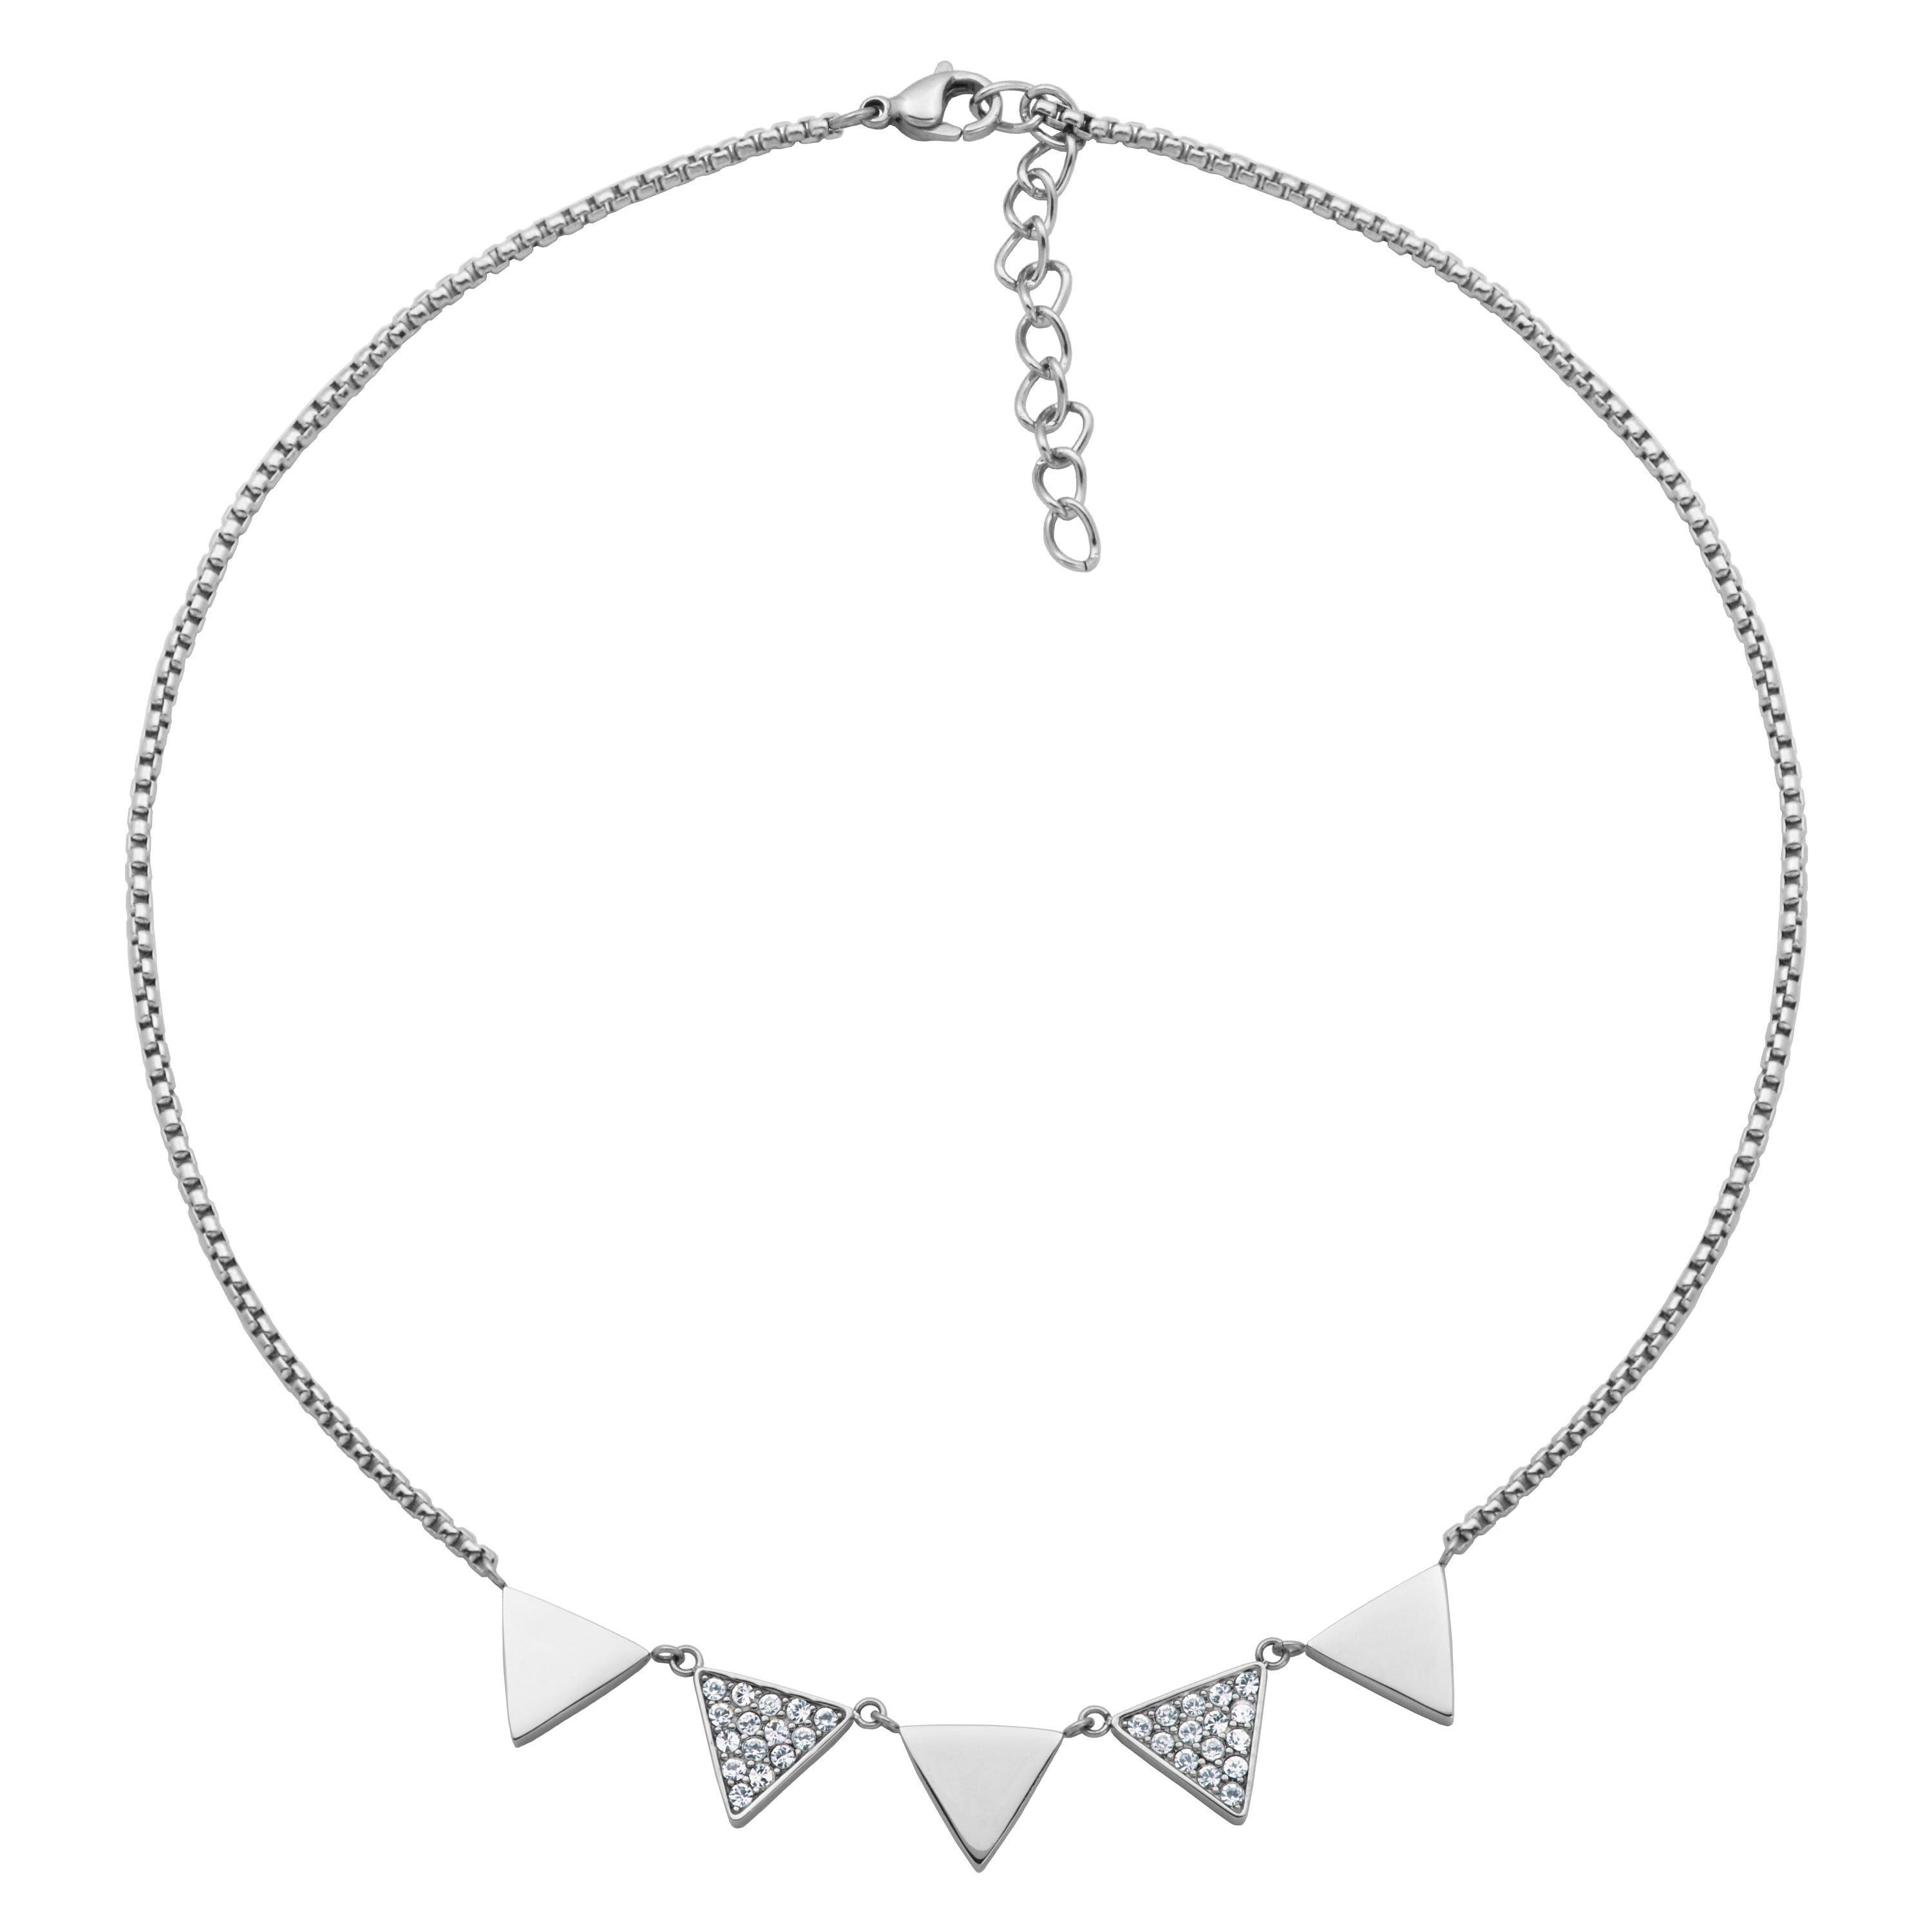 Triangle Fashion Necklace with Crystals in Stainless Steel